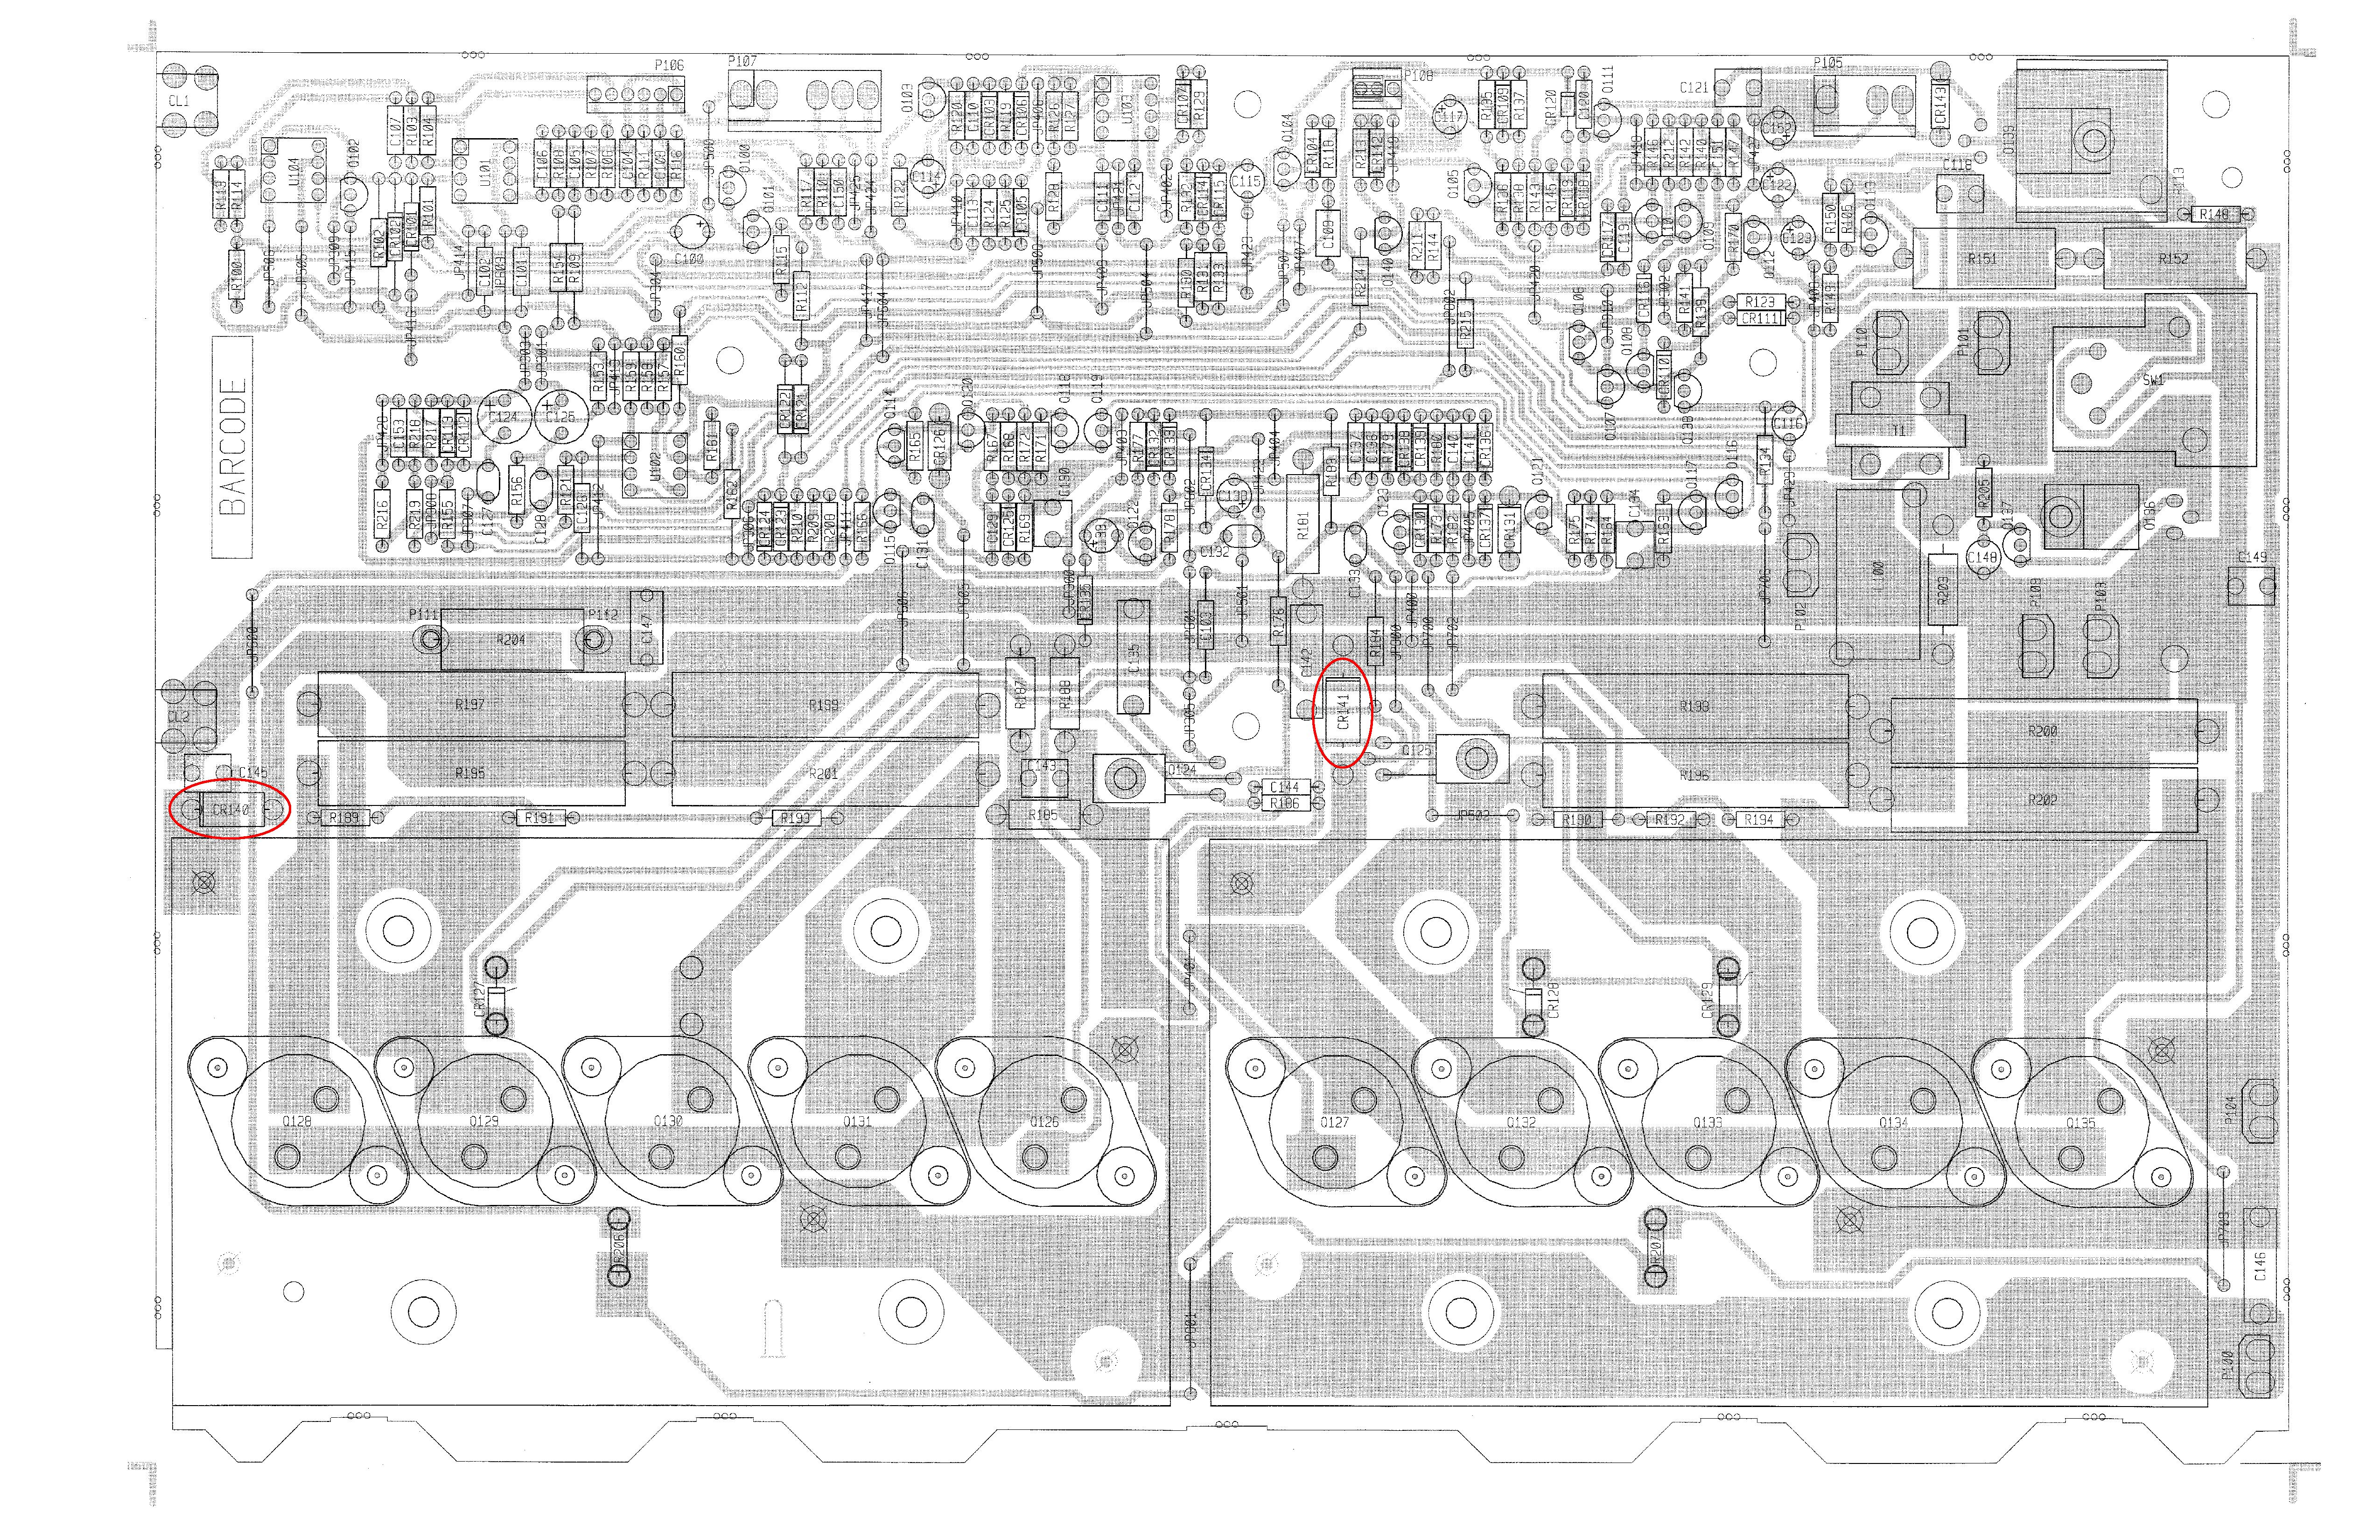 Click image for larger version.  Name:PCB with CR140 & CR141 circled.jpg Views:32 Size:5.33 MB ID:50868